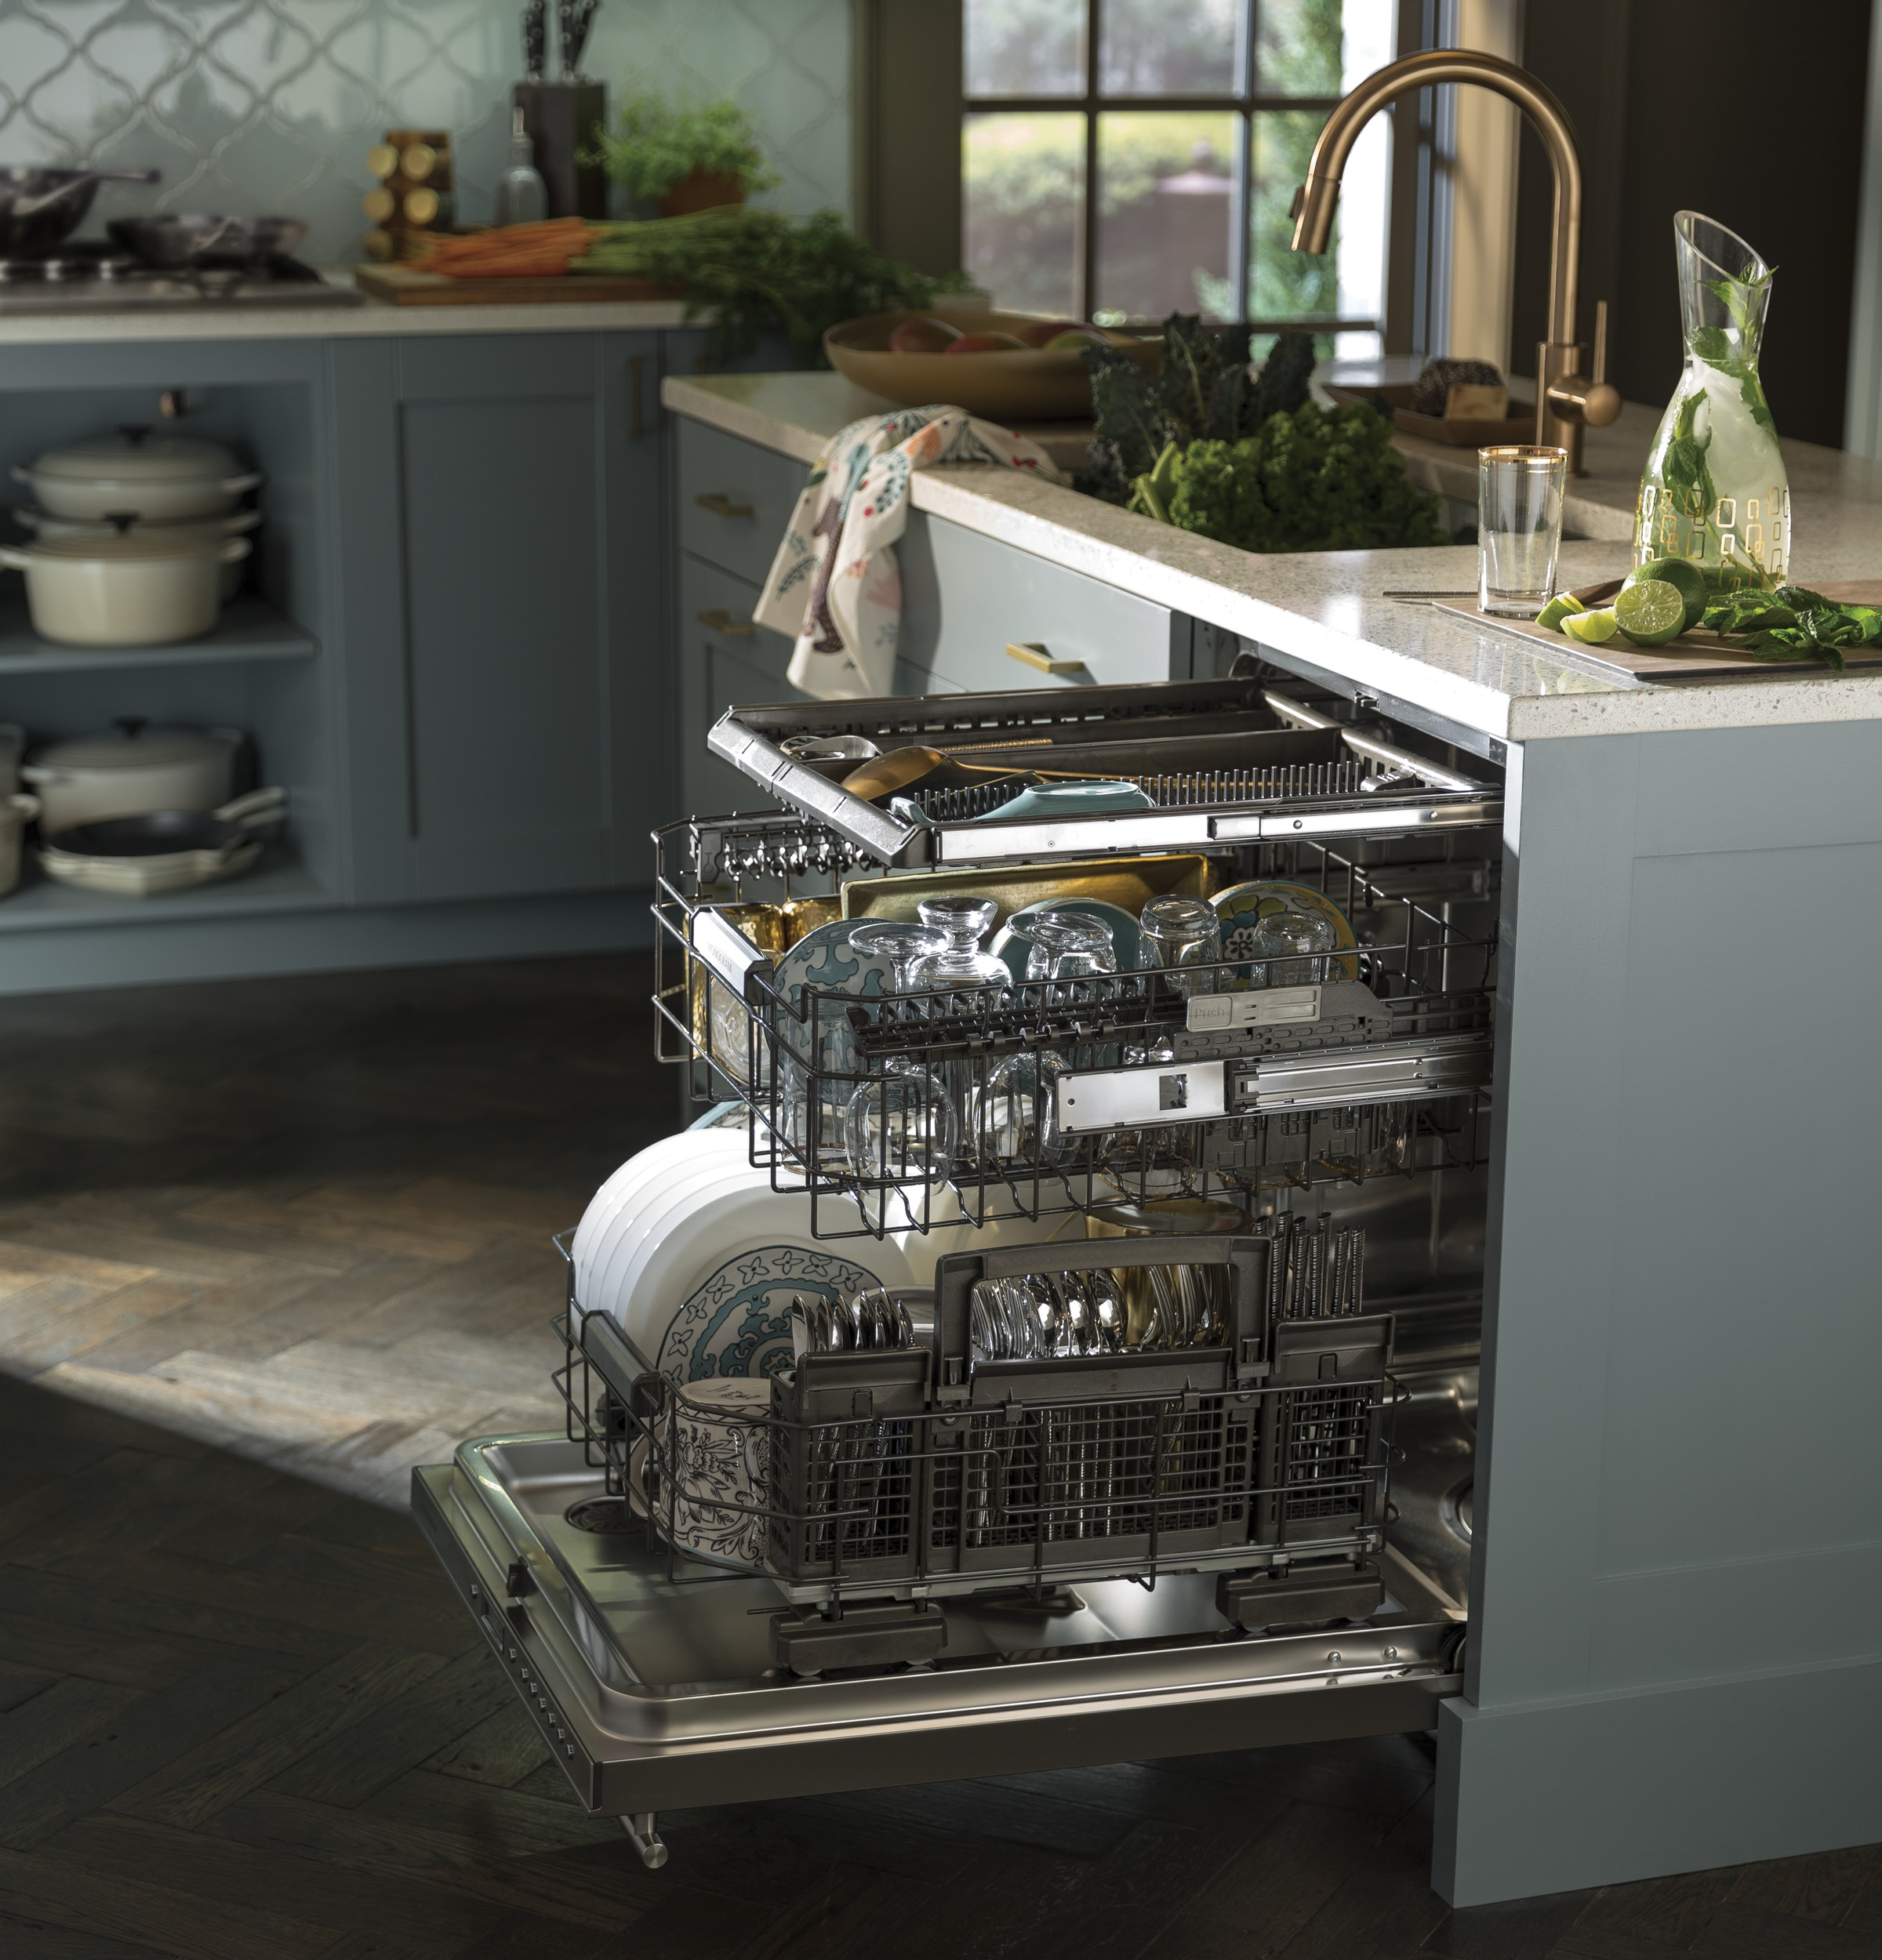 Model: ZDT975SSJSS | Monogram Monogram Smart Fully Integrated Dishwasher